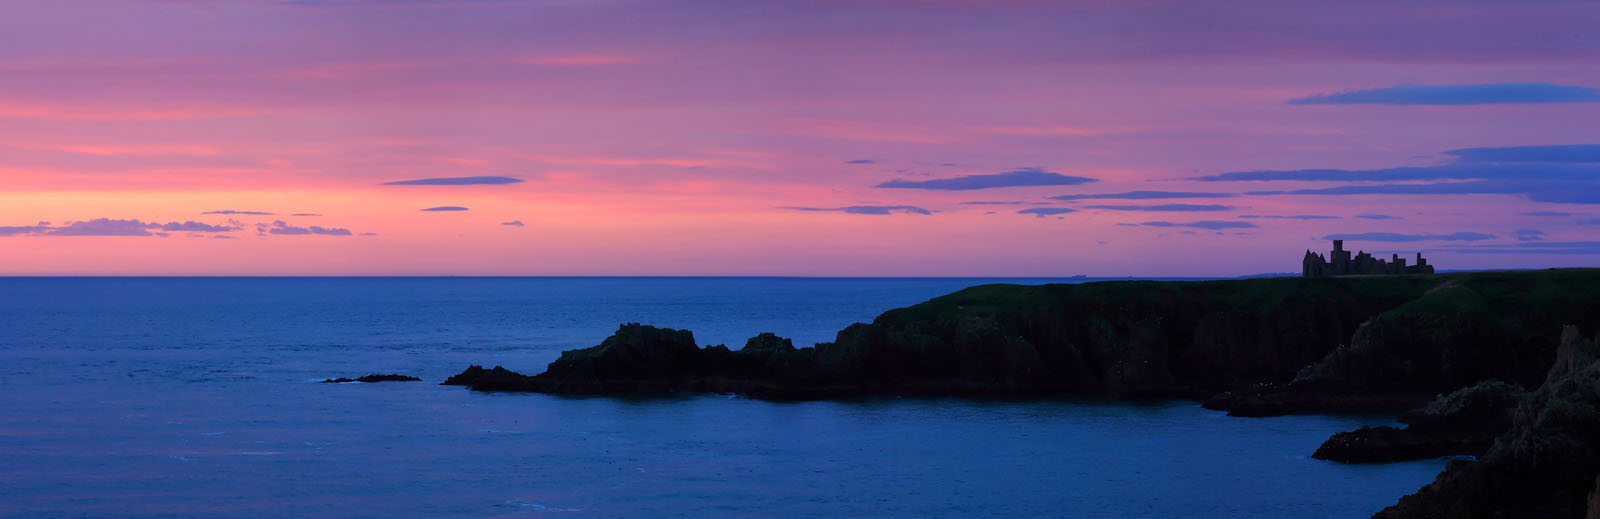 SLAINS001 : Slains Castle near Cruden Bay, Aberdeenshire